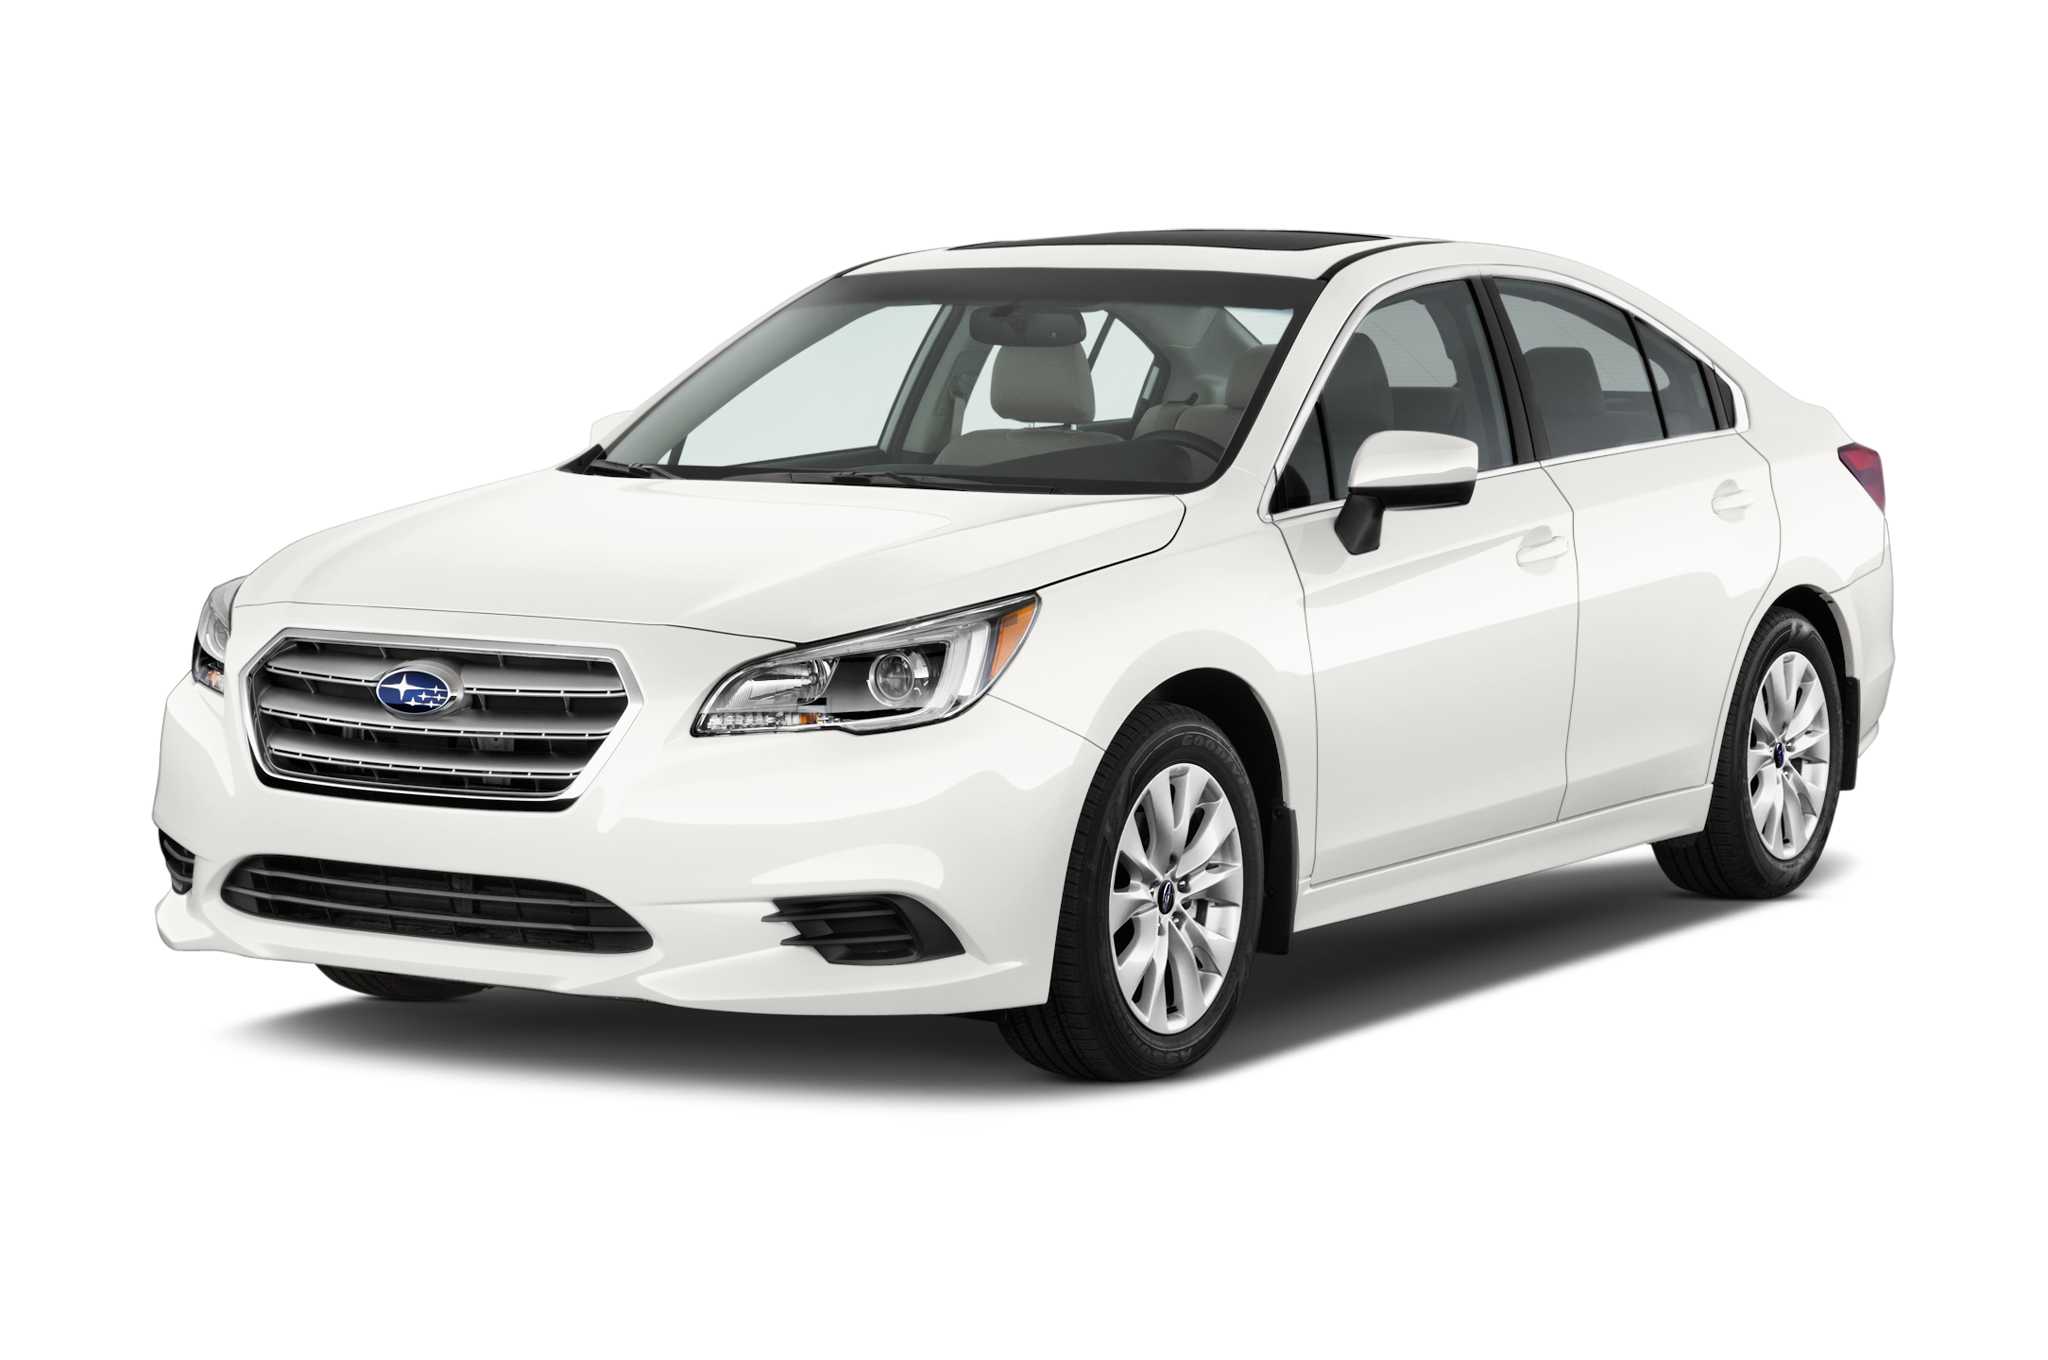 2009 subaru legacy concept to debut latest news features and 428 vanachro Image collections